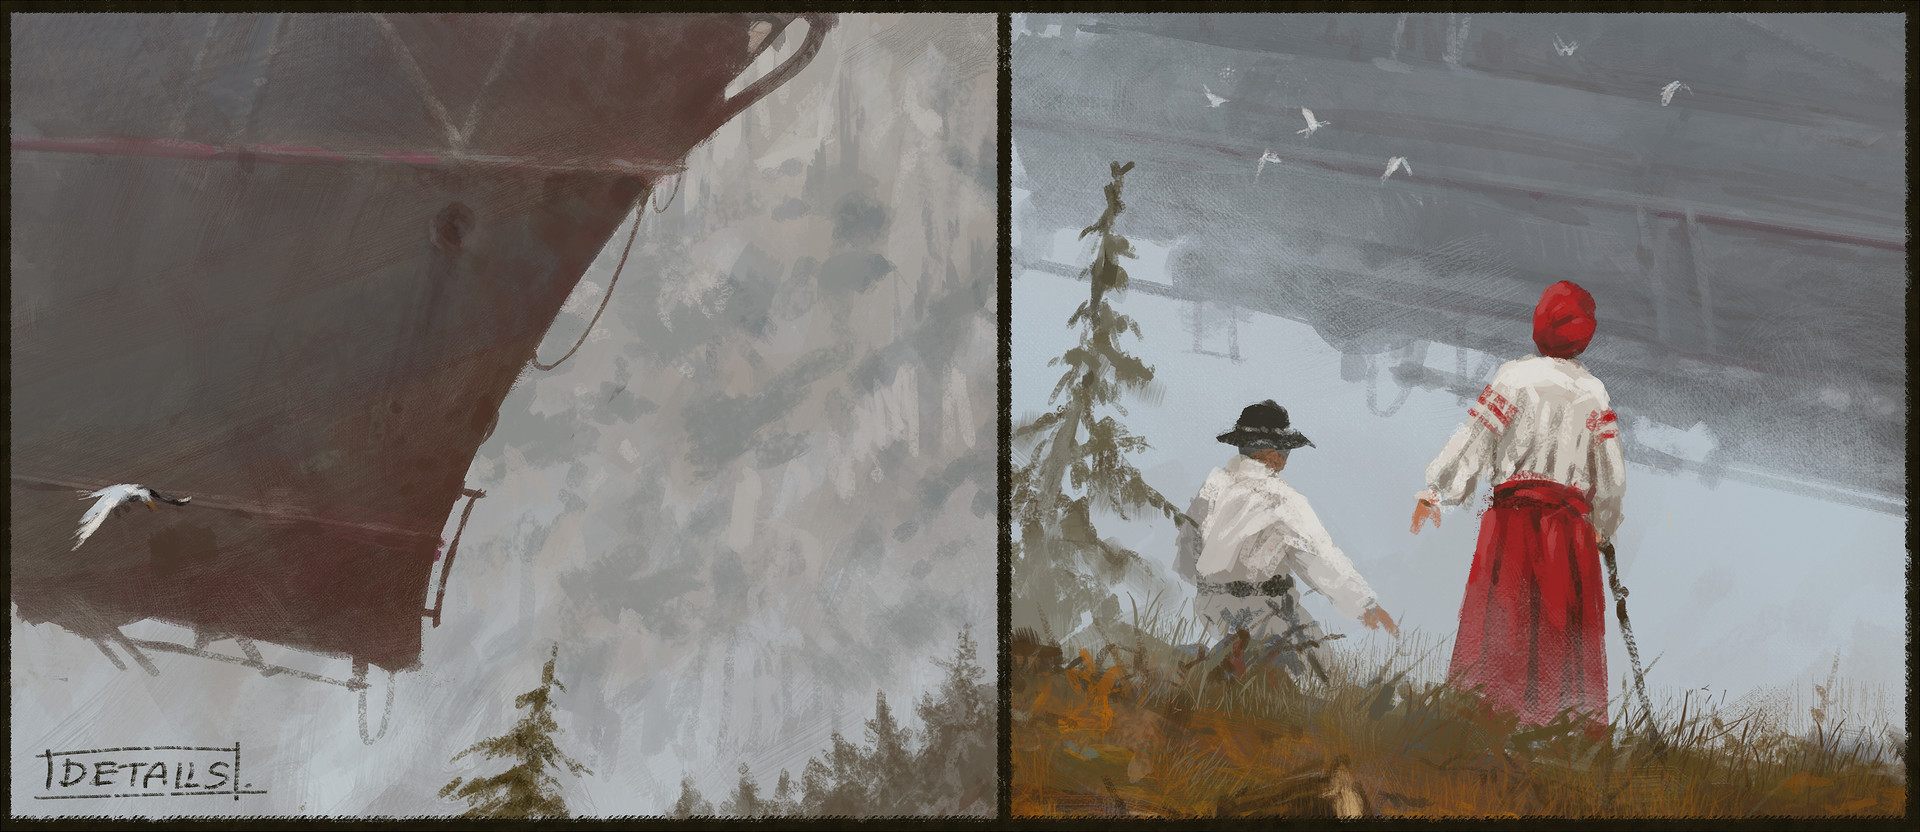 Jakub rozalski airship expansion cover art process7